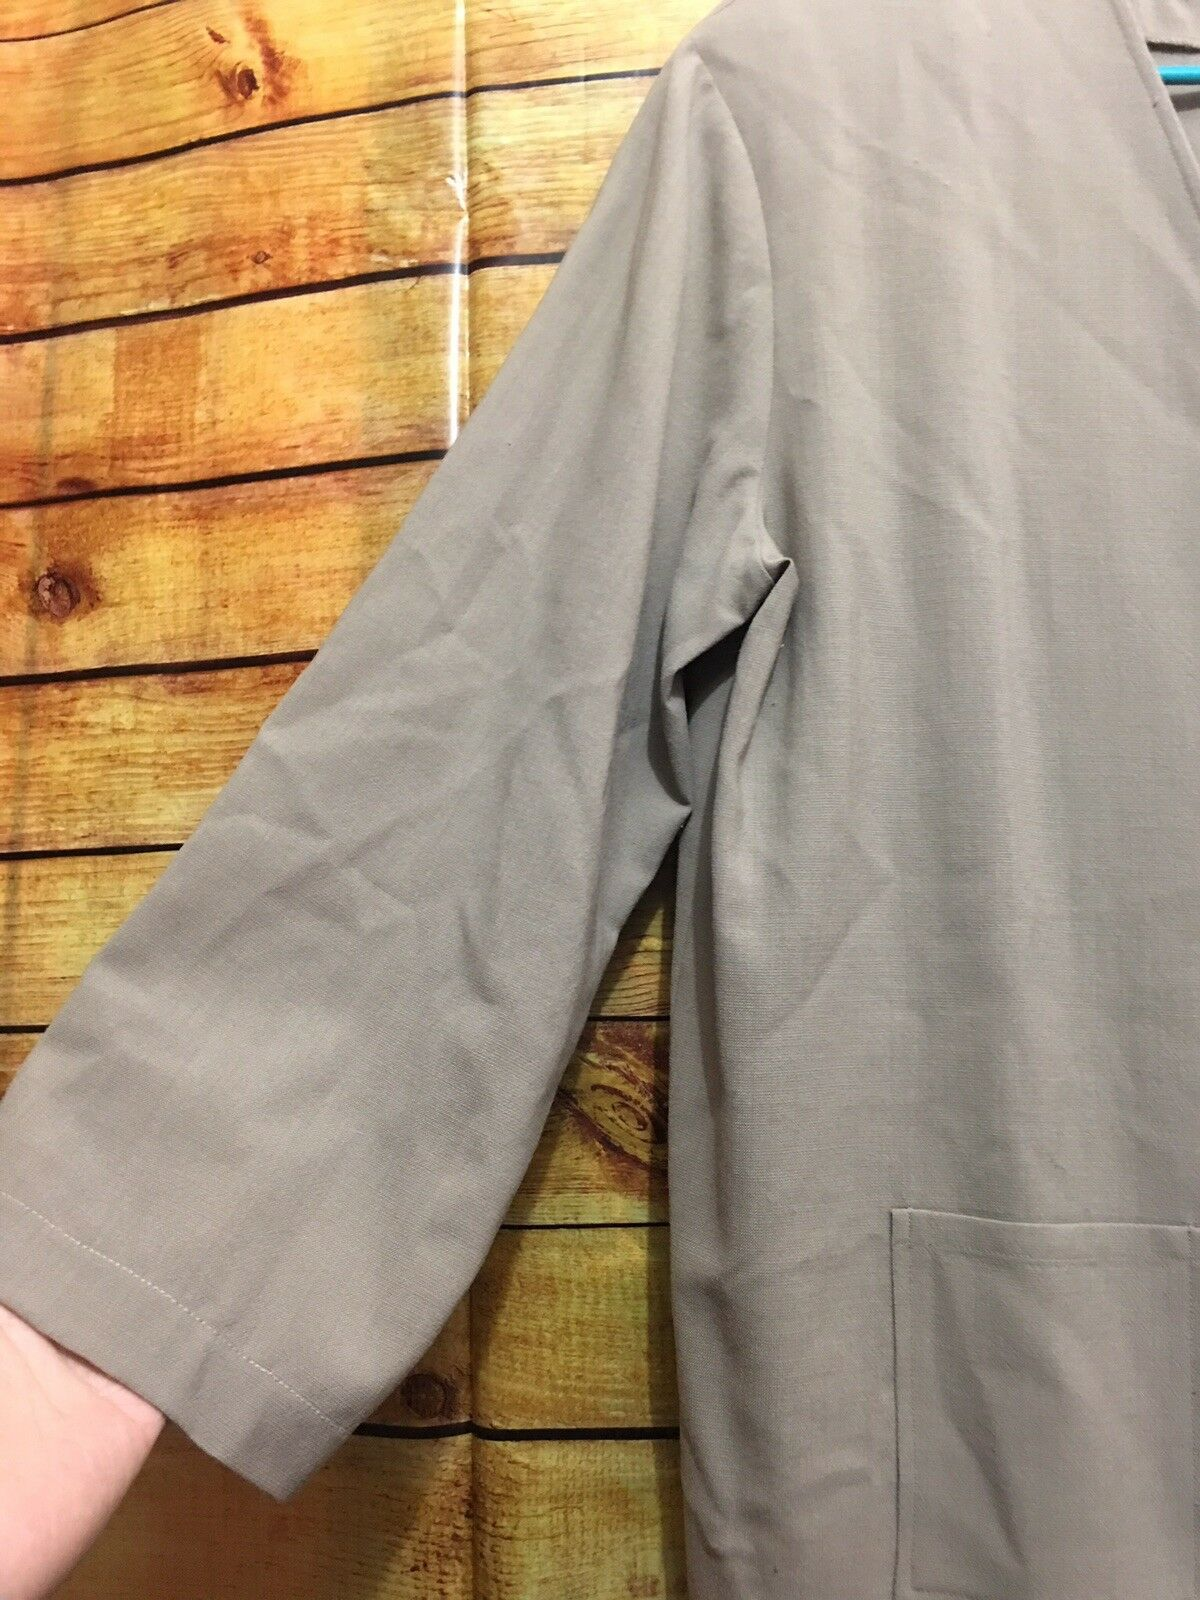 Hino & Malee Malee Malee Light Brown Blouse M Pre-owned 2c095a